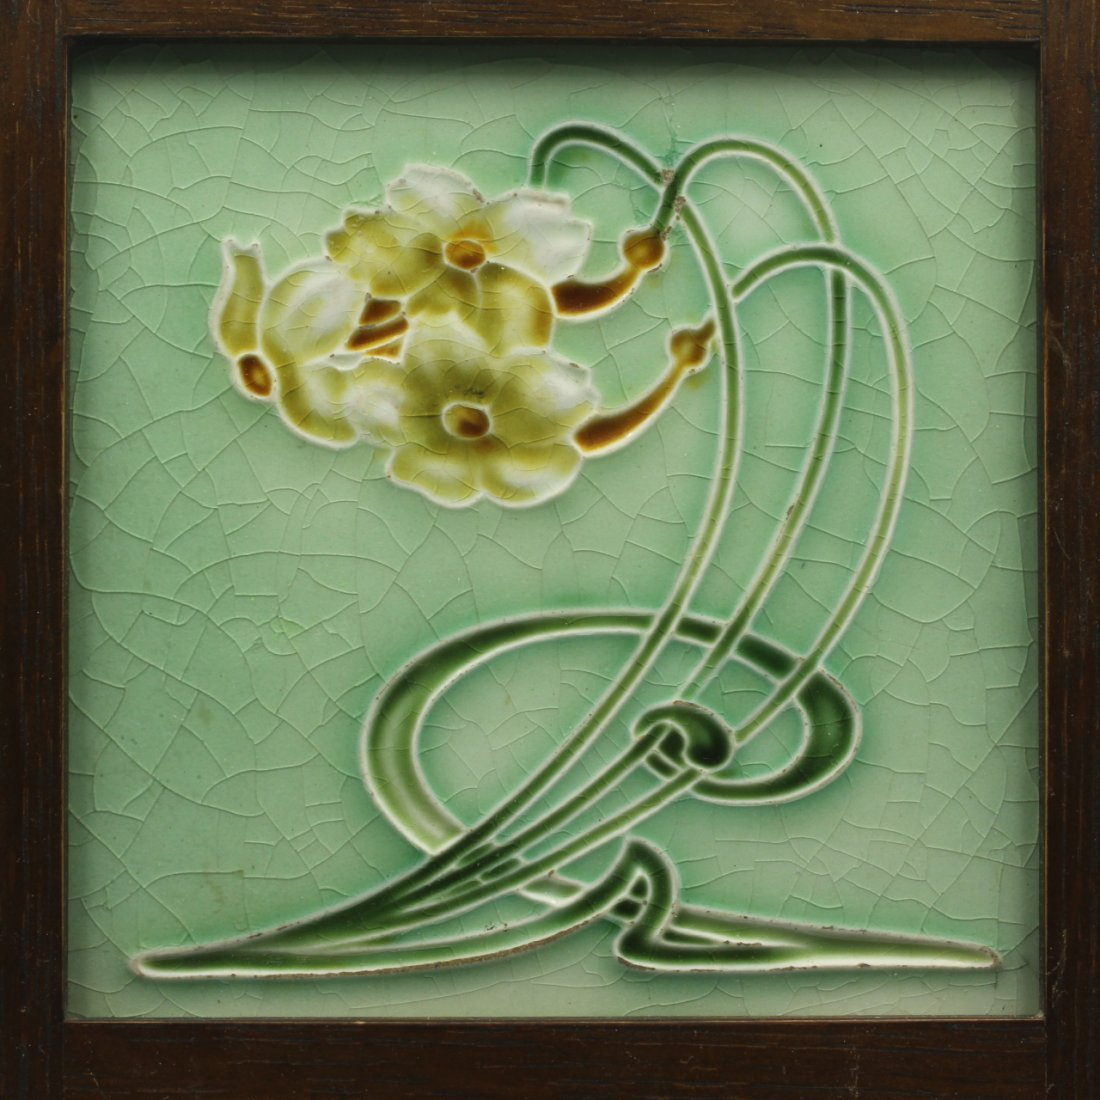 Art Nouveau Design Tile, C. 1906